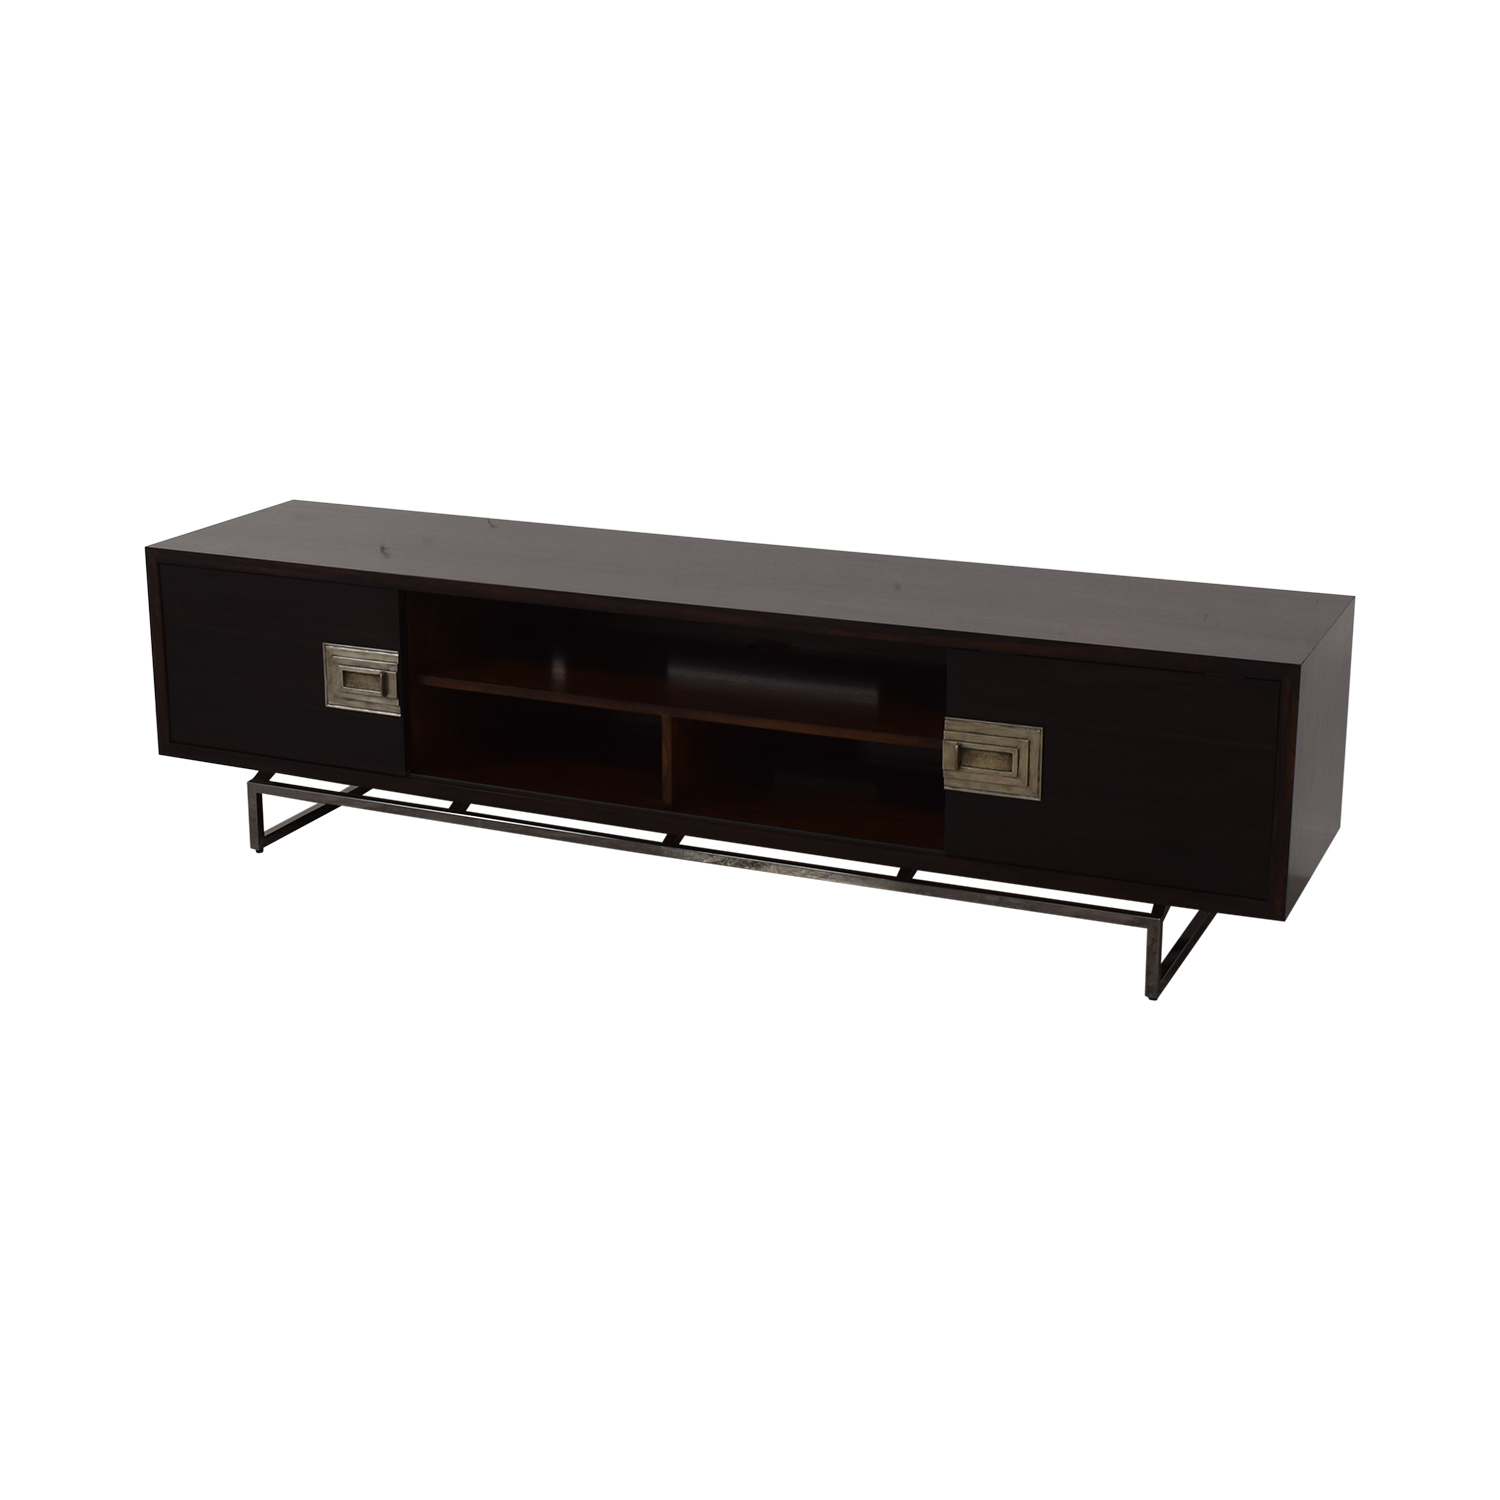 Century Furniture Century Furniture Chin Hua Turpan Low Entertainment Console on sale